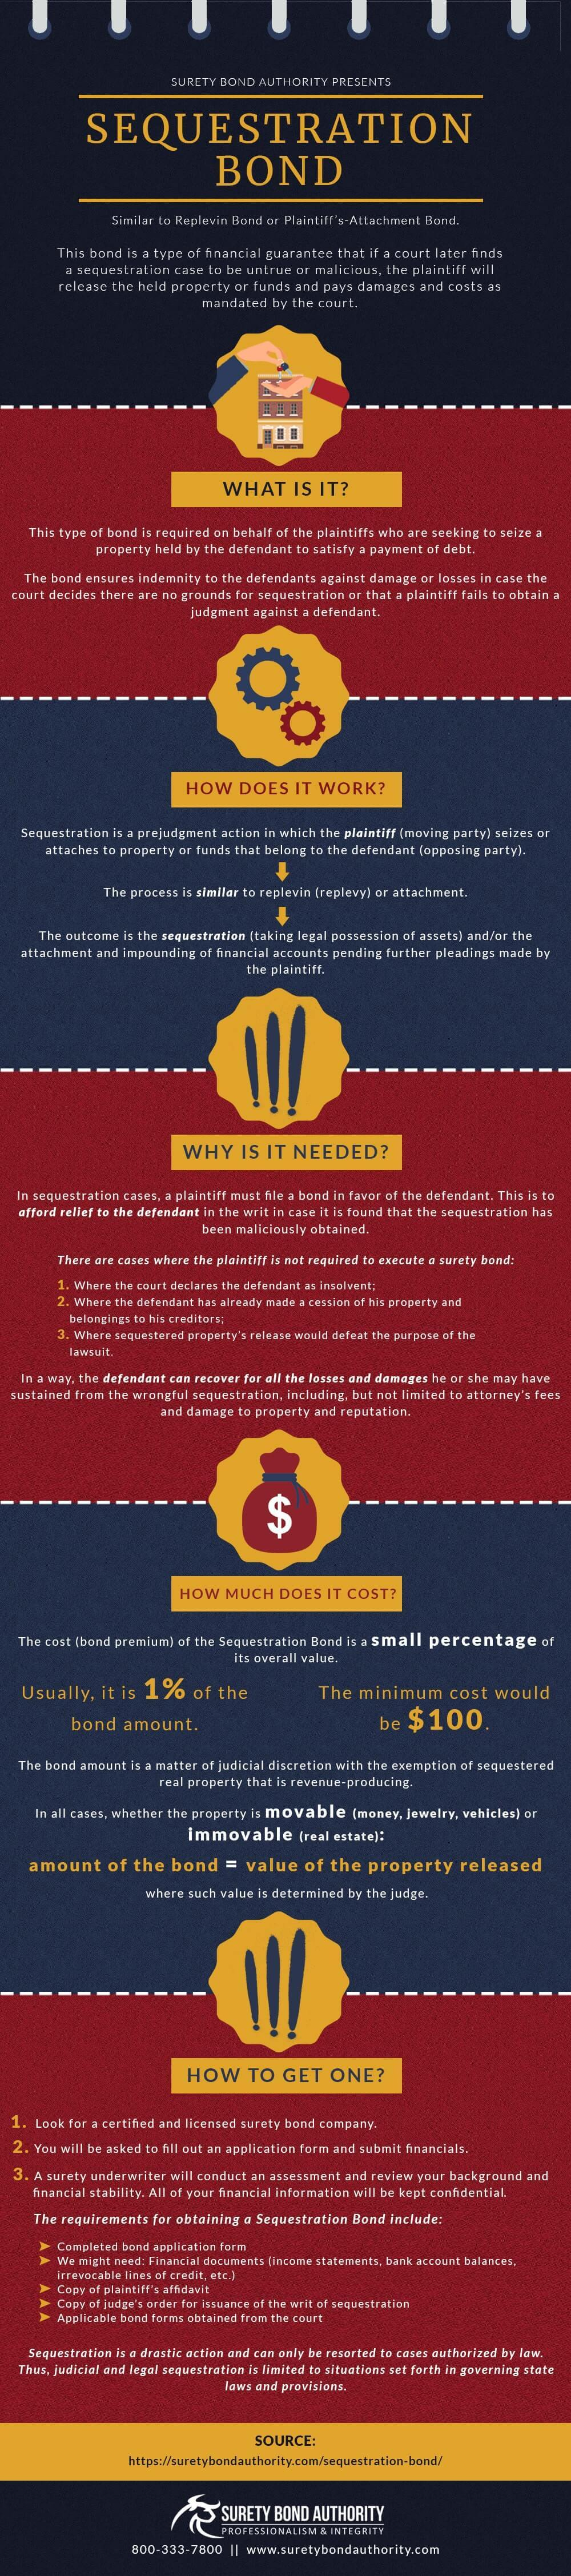 Sequestration Bond Infographic